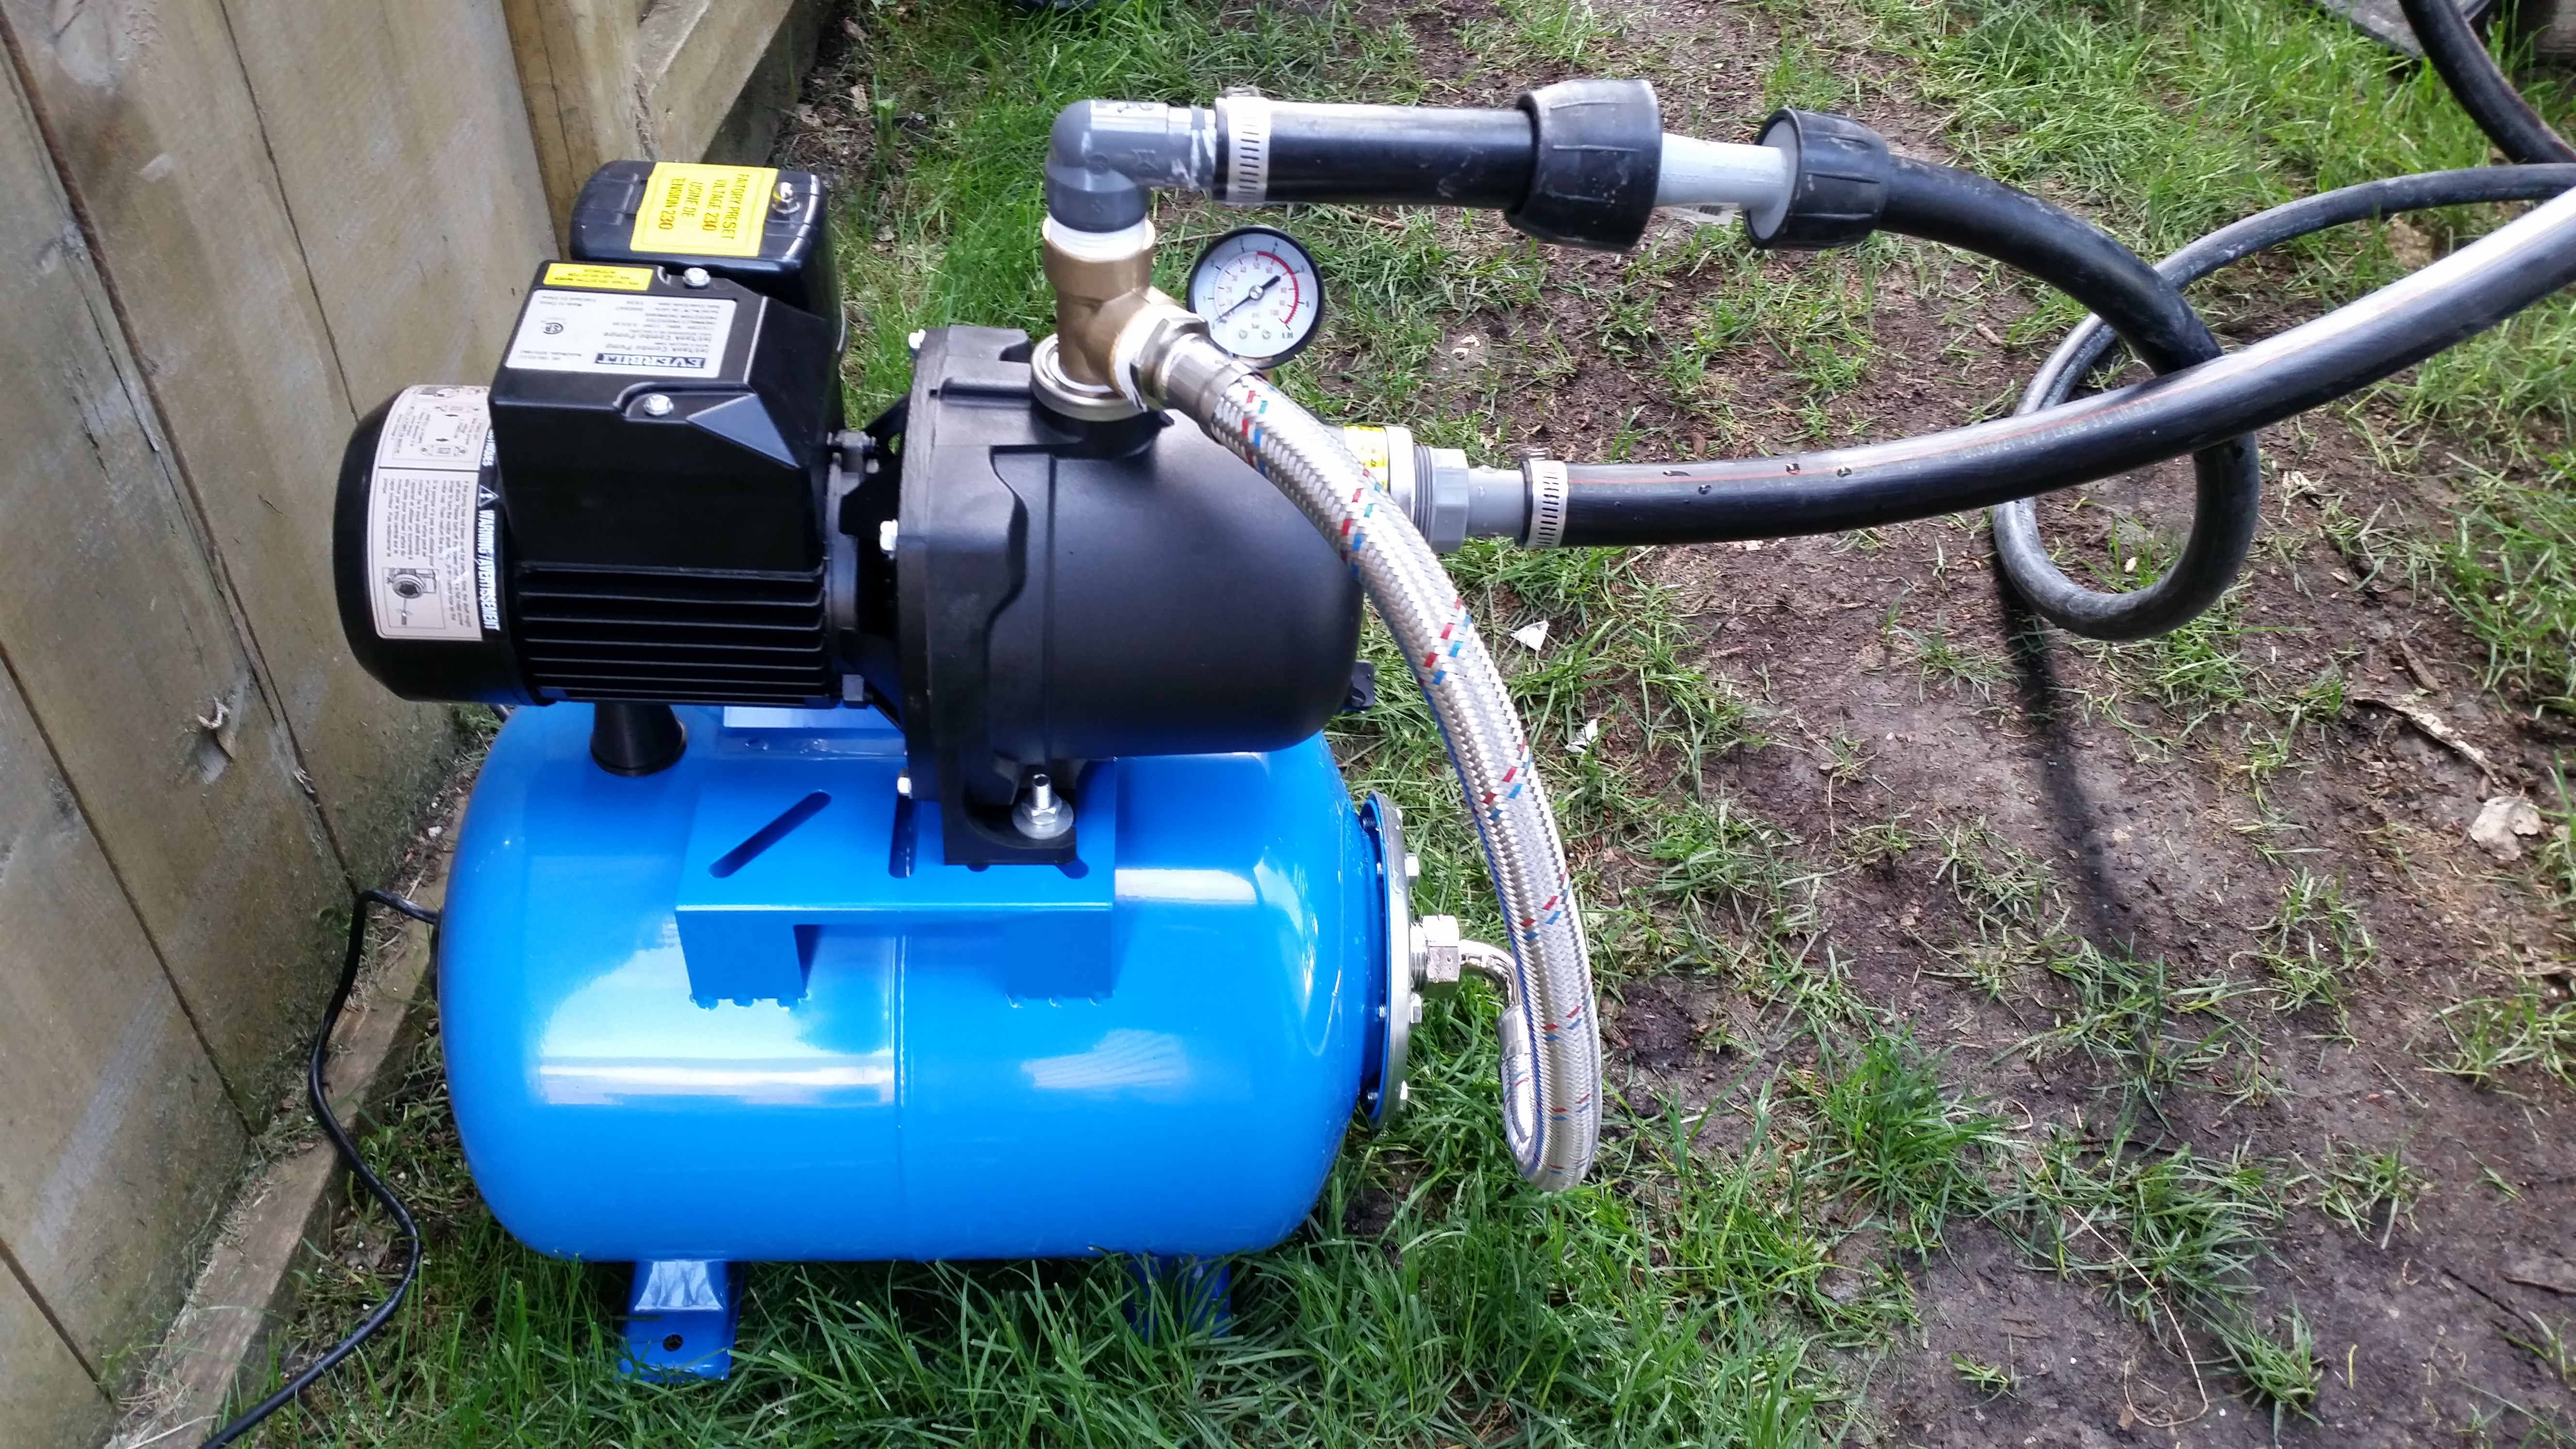 Everbilt 1/2 HP Jet Pump with 6 Gallon Pressure Tank Hooked Up To Poly Pipes